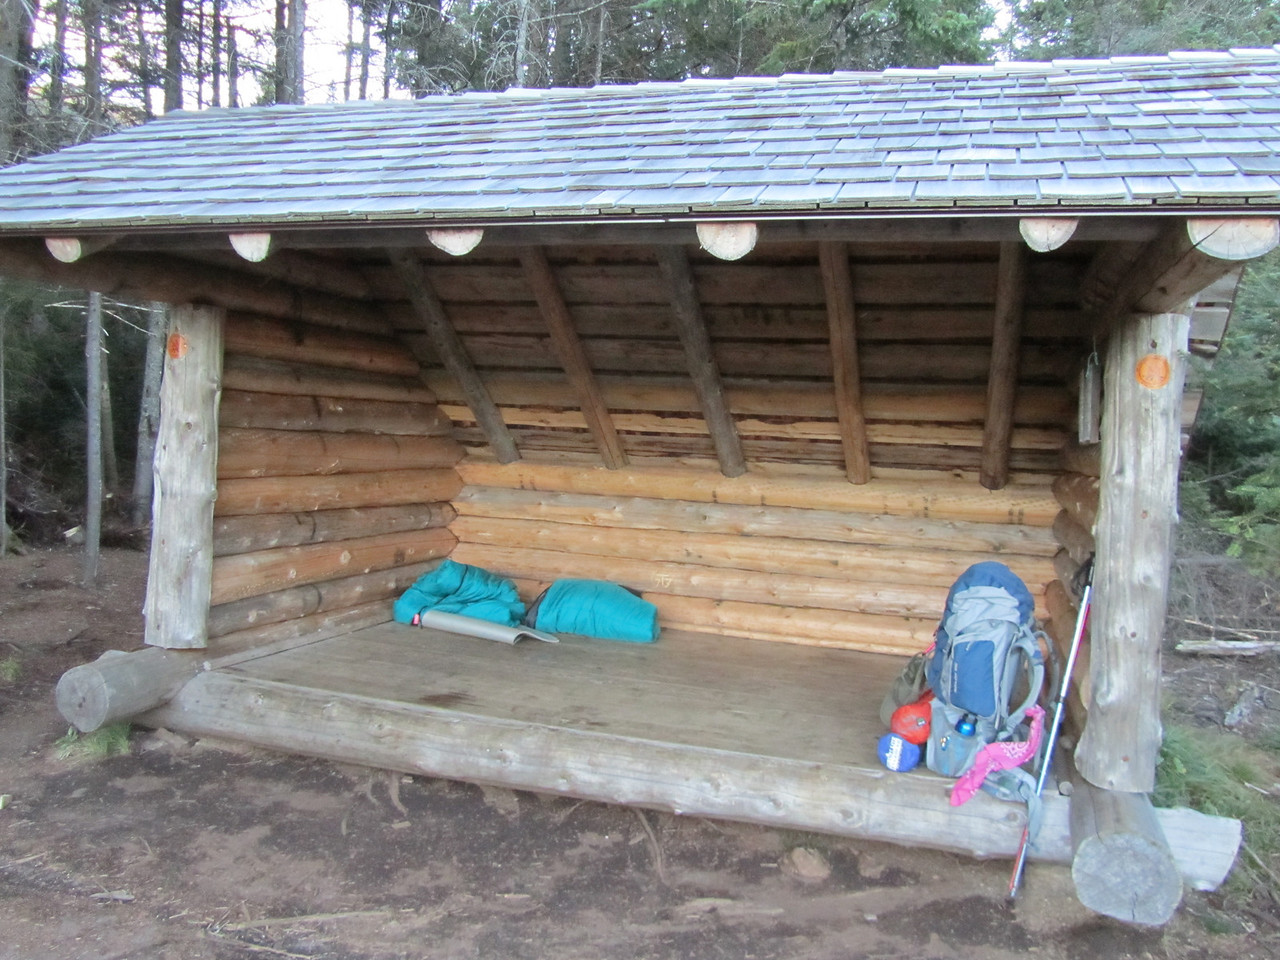 We initially picked this lean-to but the wind across the bog was horrific, so Tim raced off and reserved the lean-to at Colden Dam across the Opalescent creek.